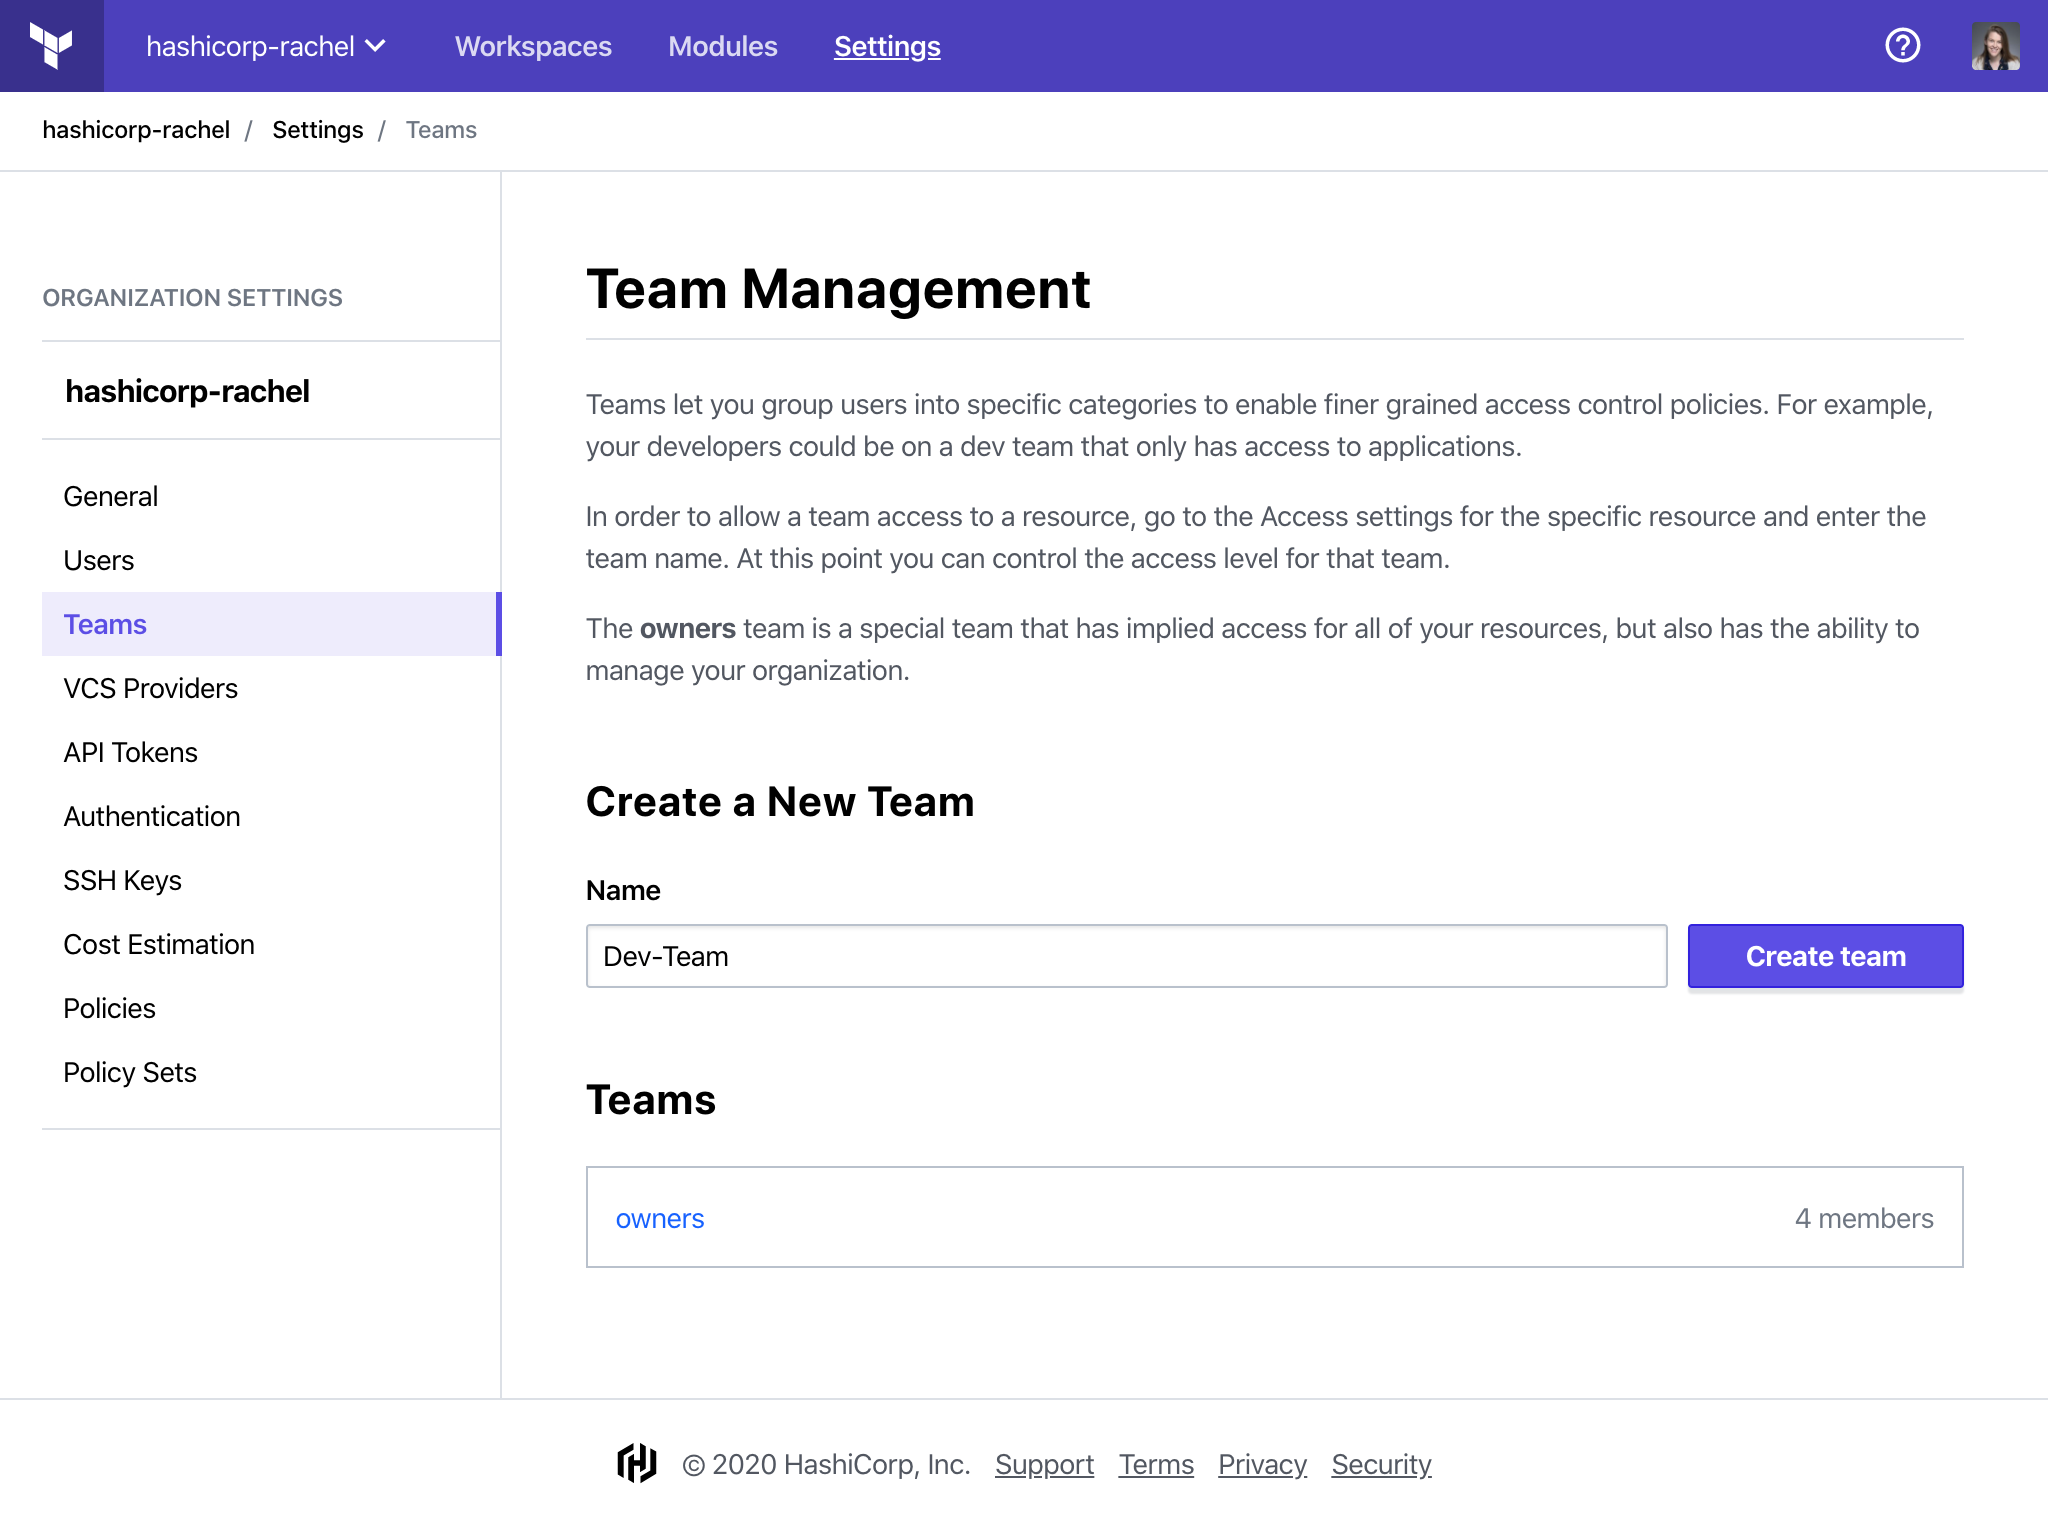 Create a new team